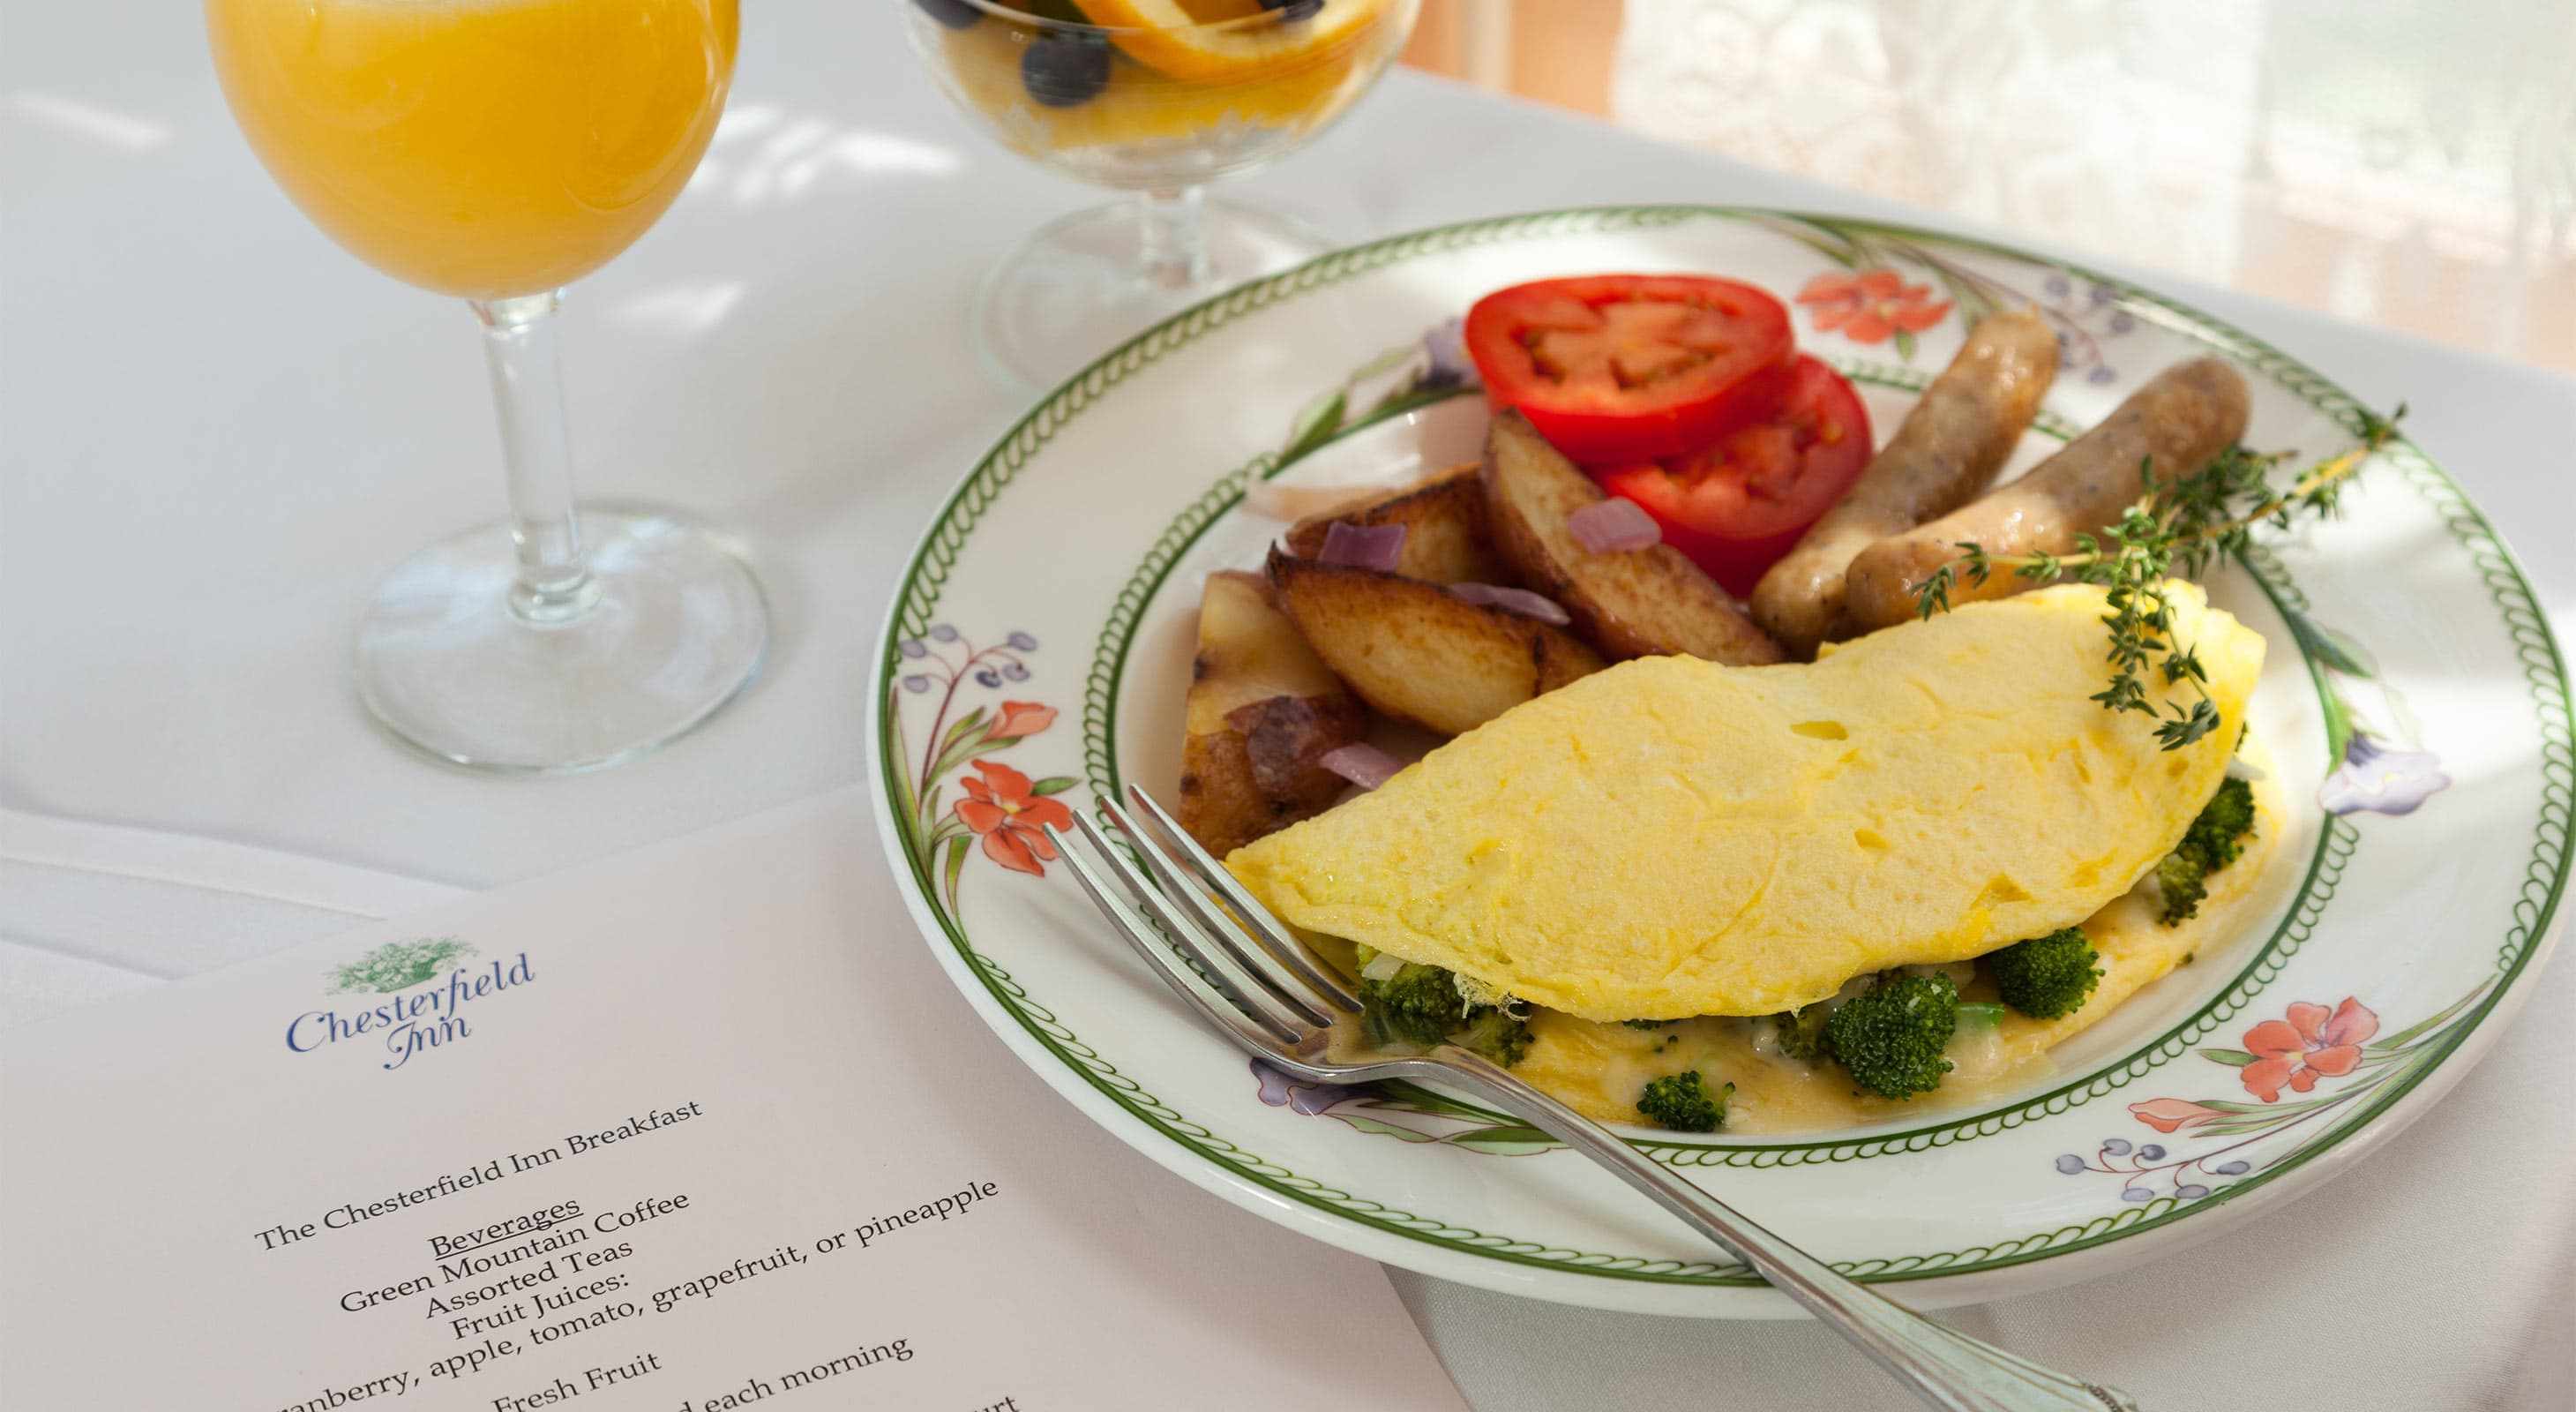 Breakfast Quiche with potatoes, orange juice and fruit in background